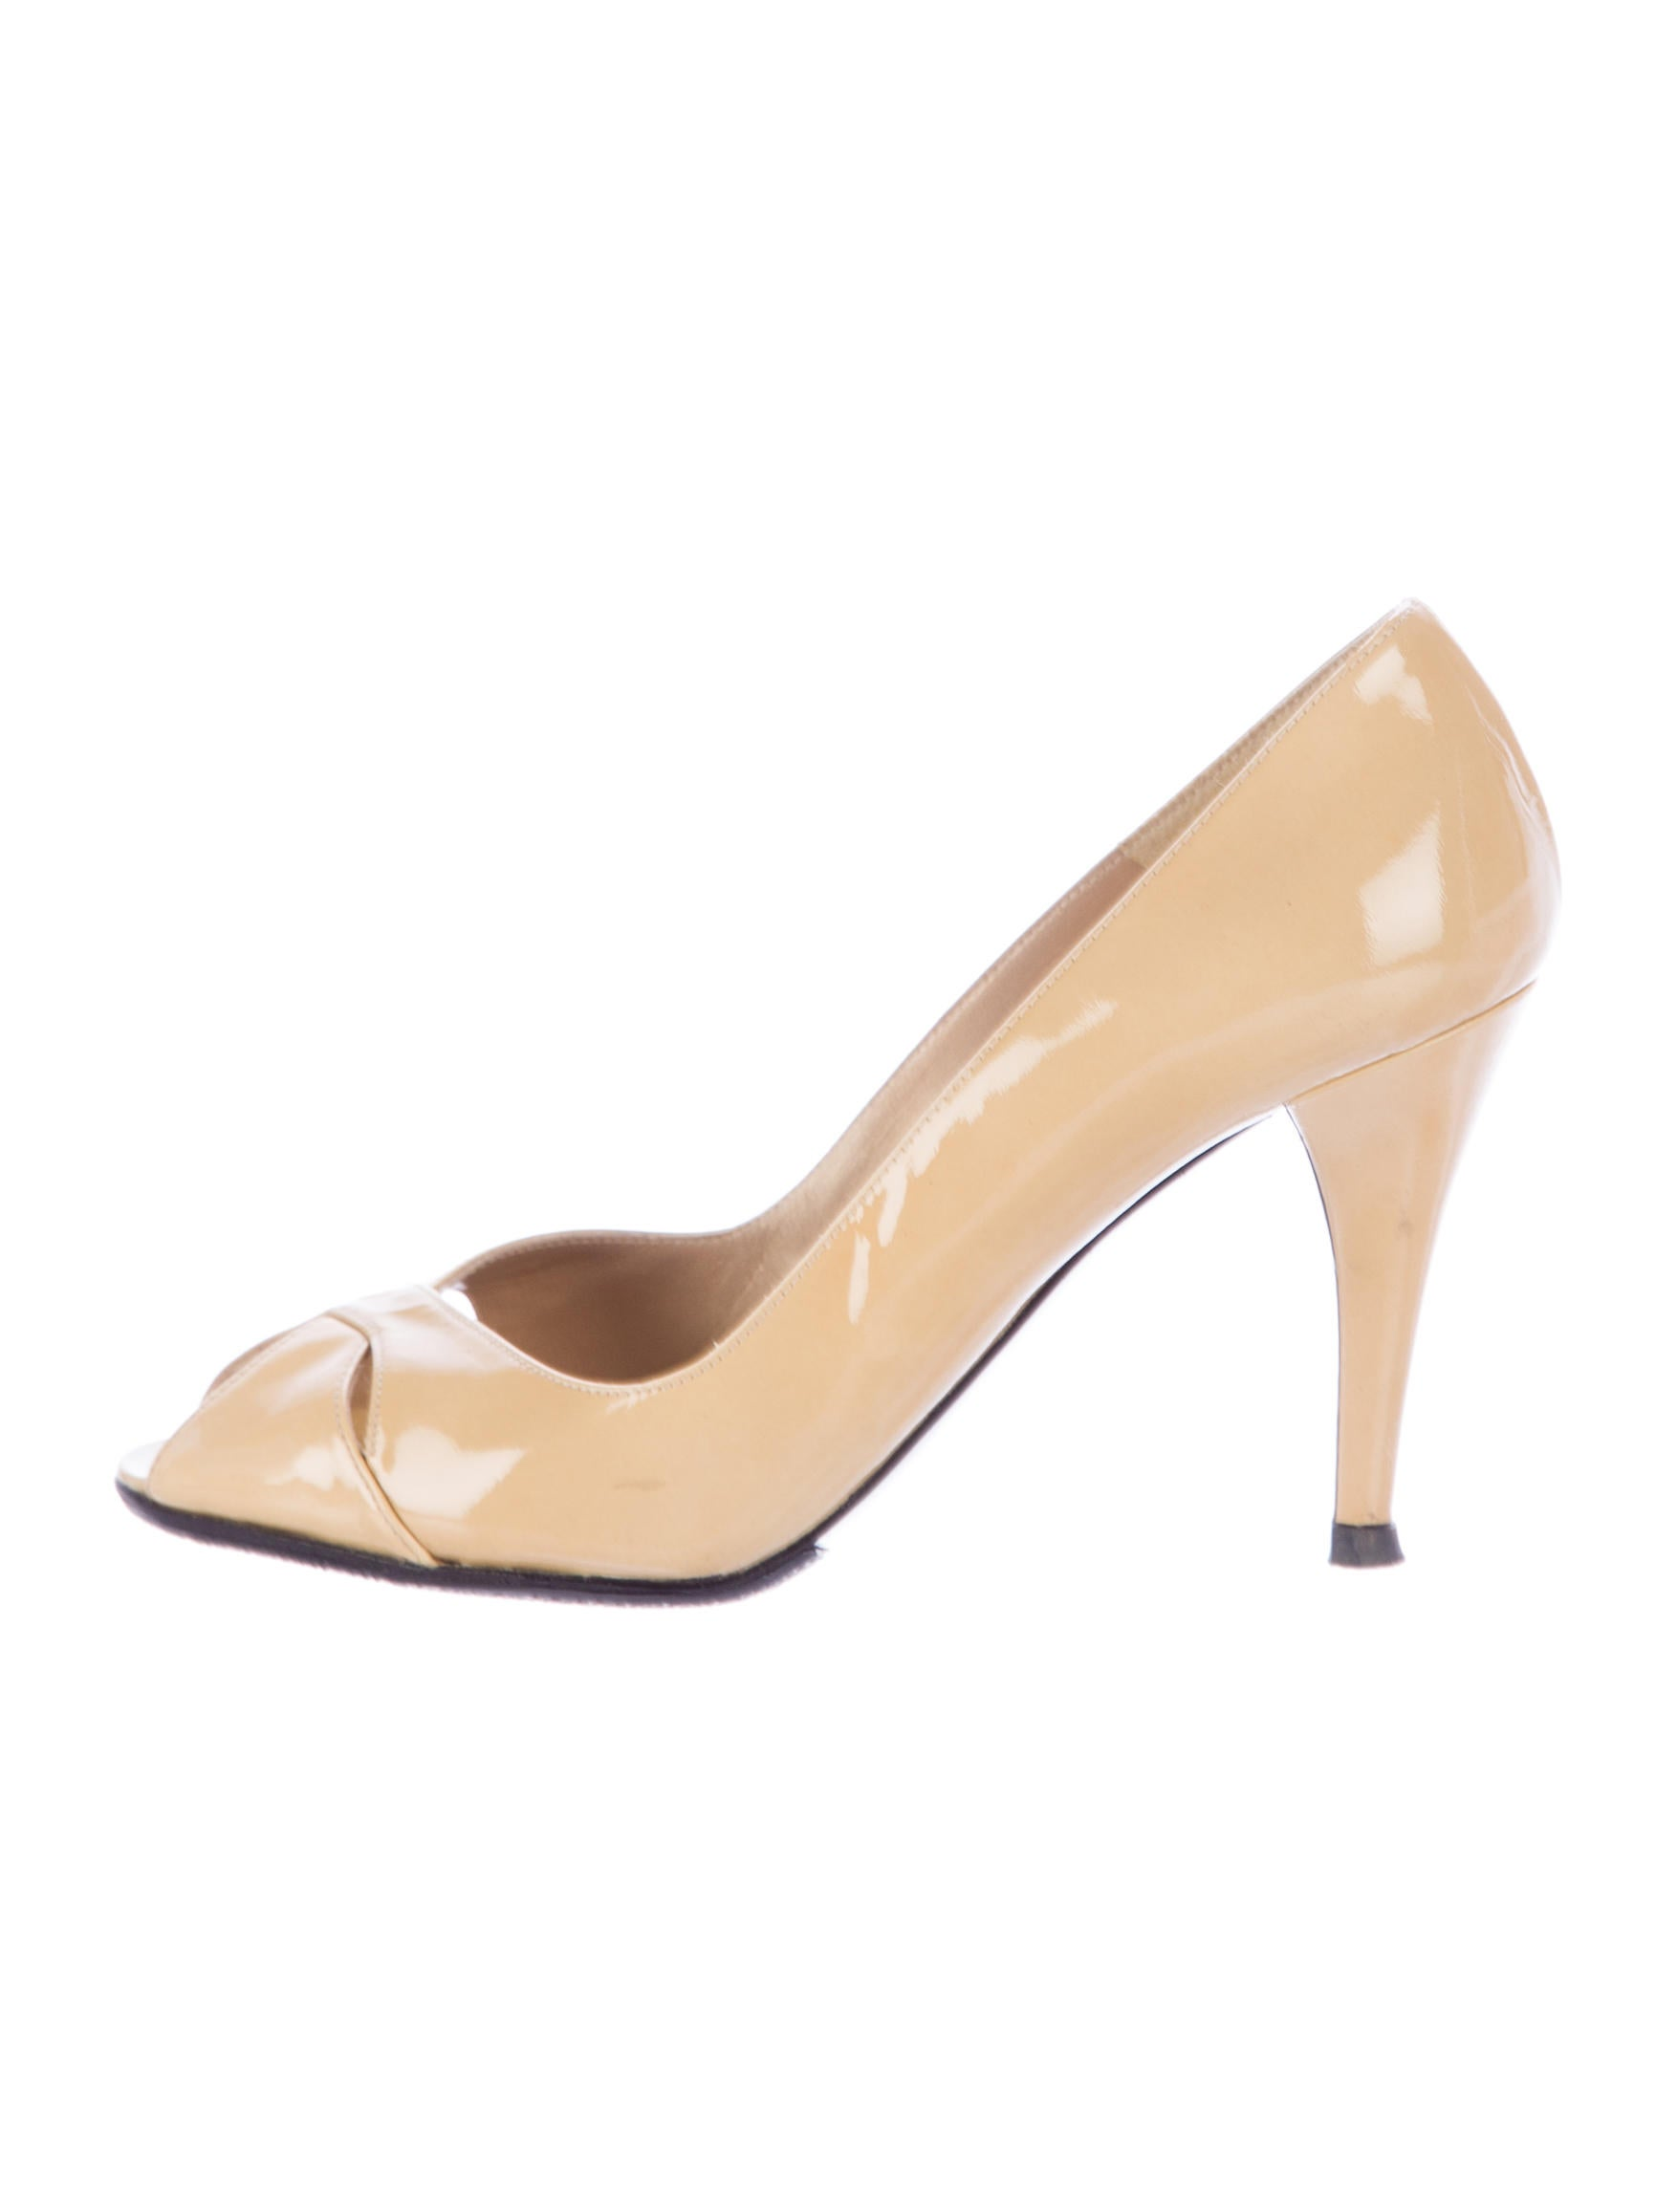 Stuart Weitzman Sashay Patent He... free shipping footaction clearance latest collections clearance 2014 newest IiNdSK